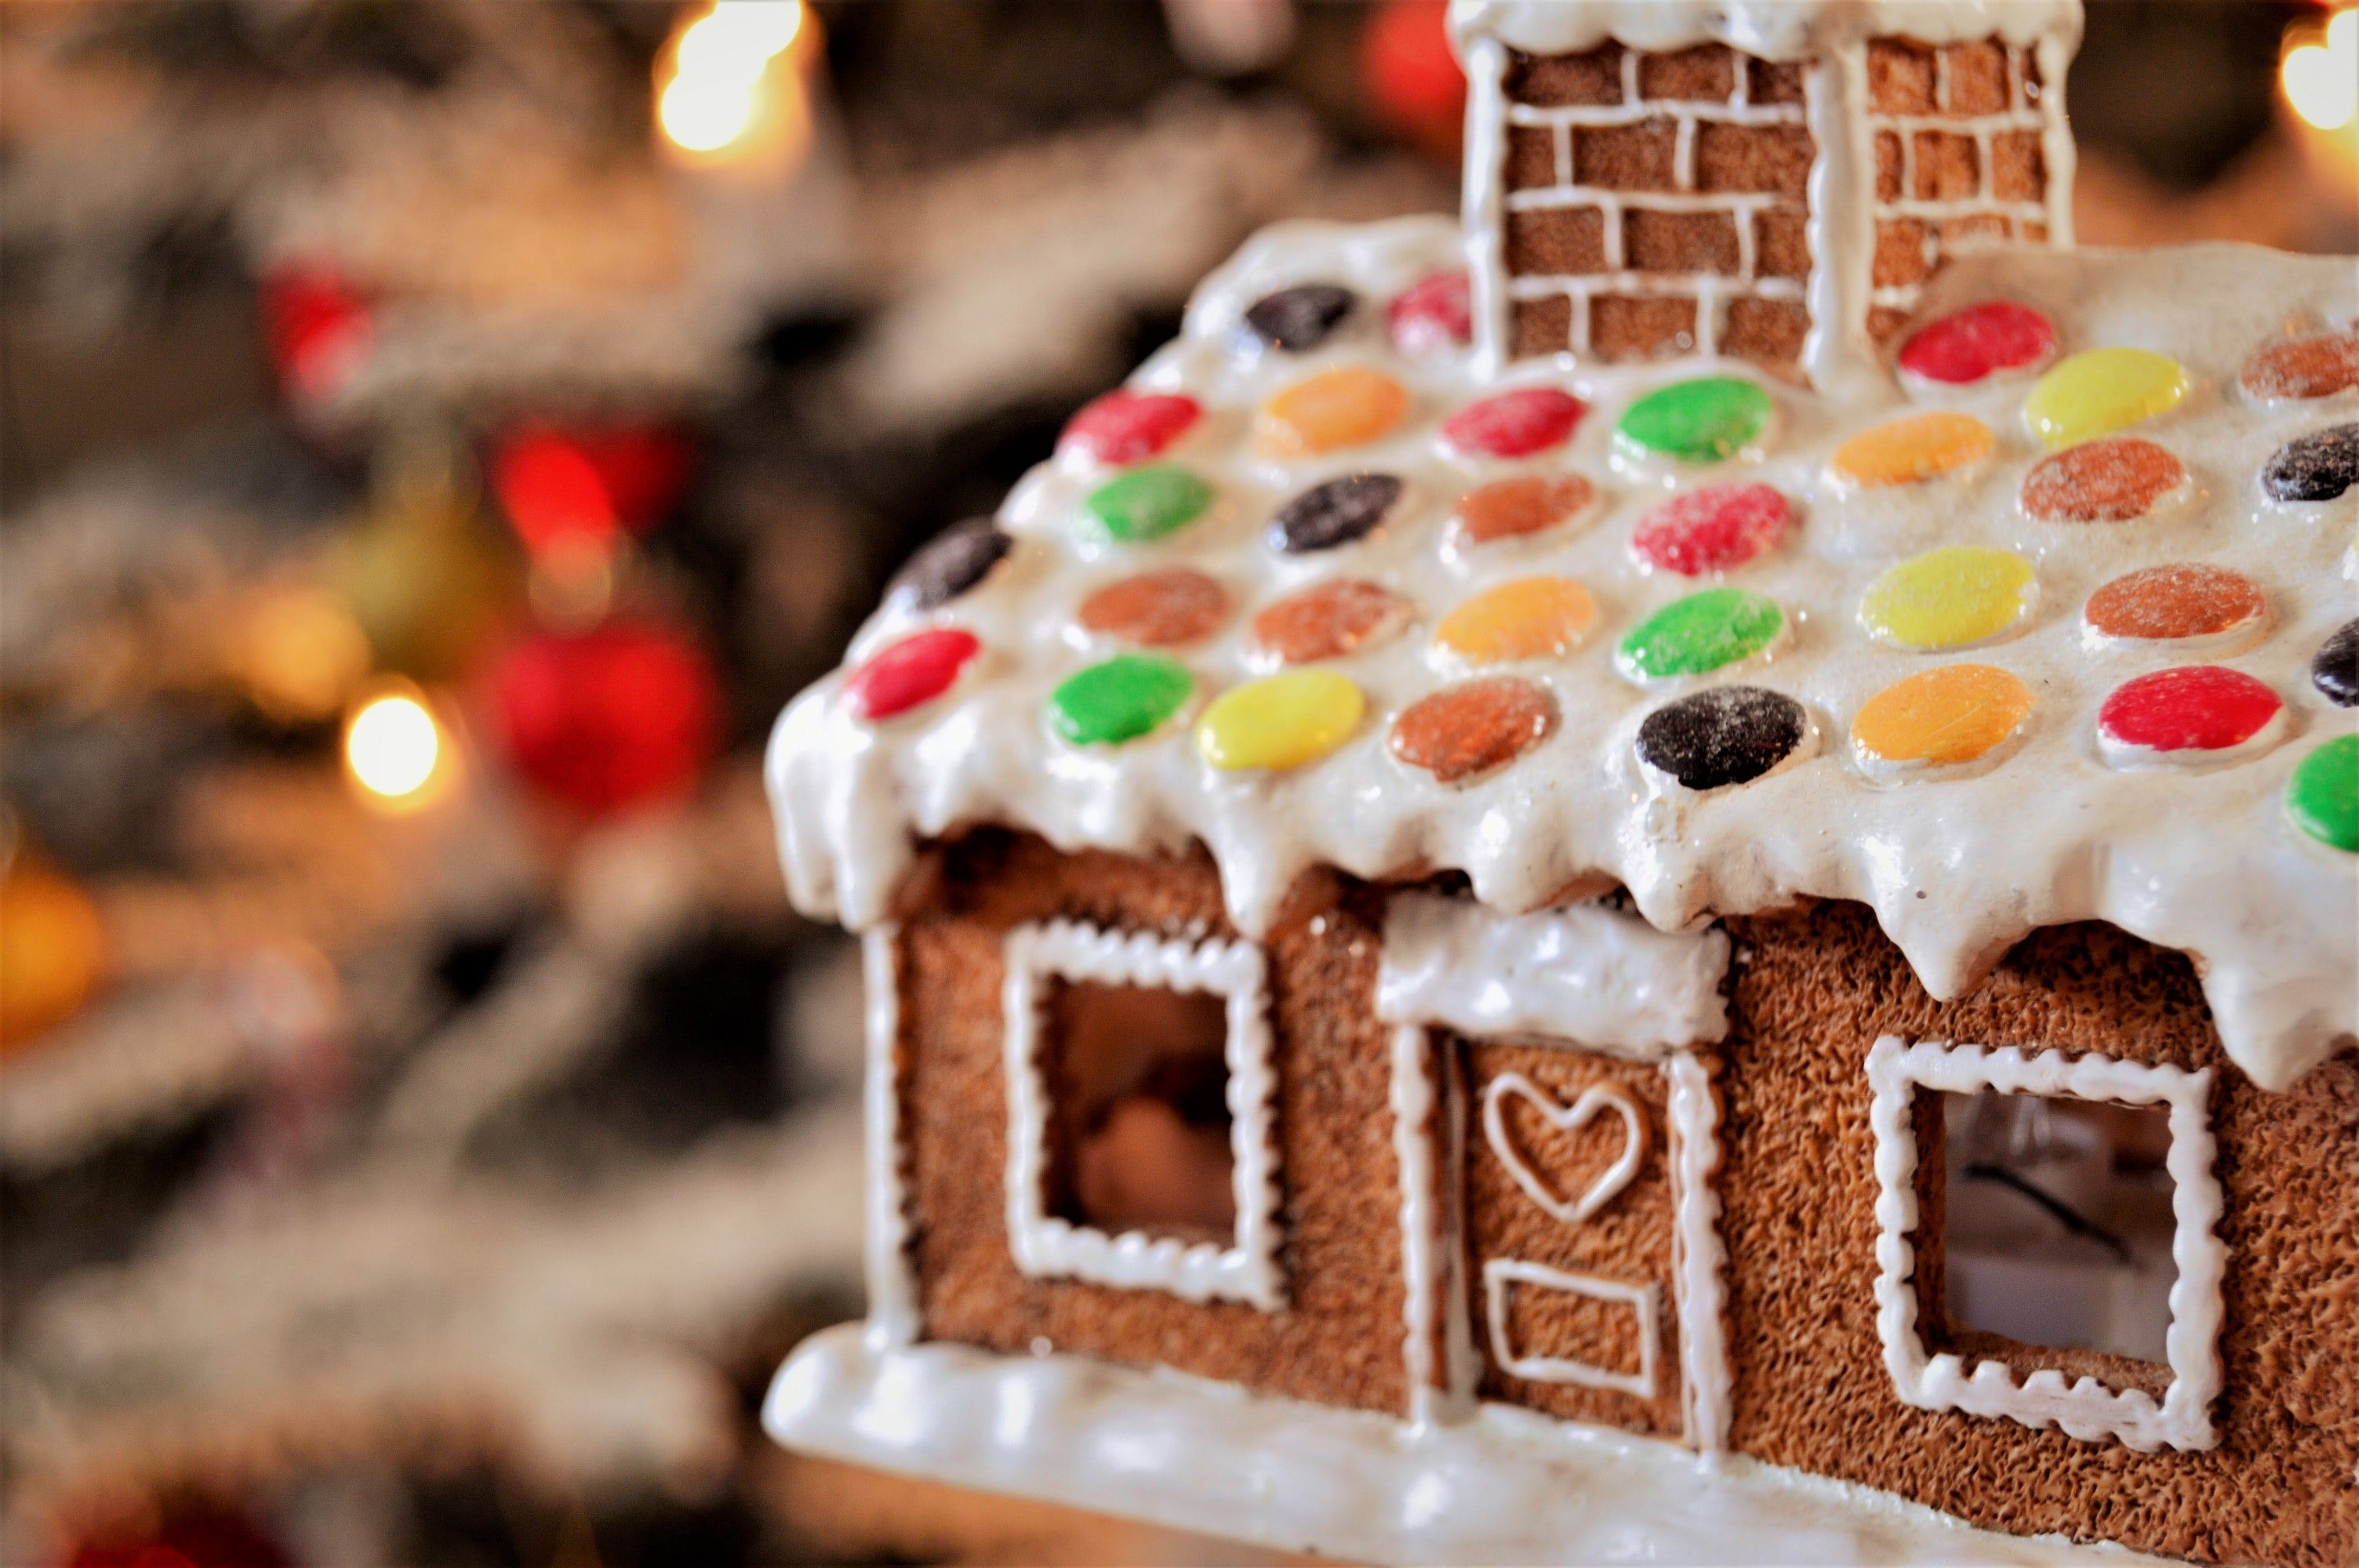 DIY Christmas Decorations Advent Calendar Festive Holiday Home Decoration Crafts gingerbread house baking crafts icing sugar